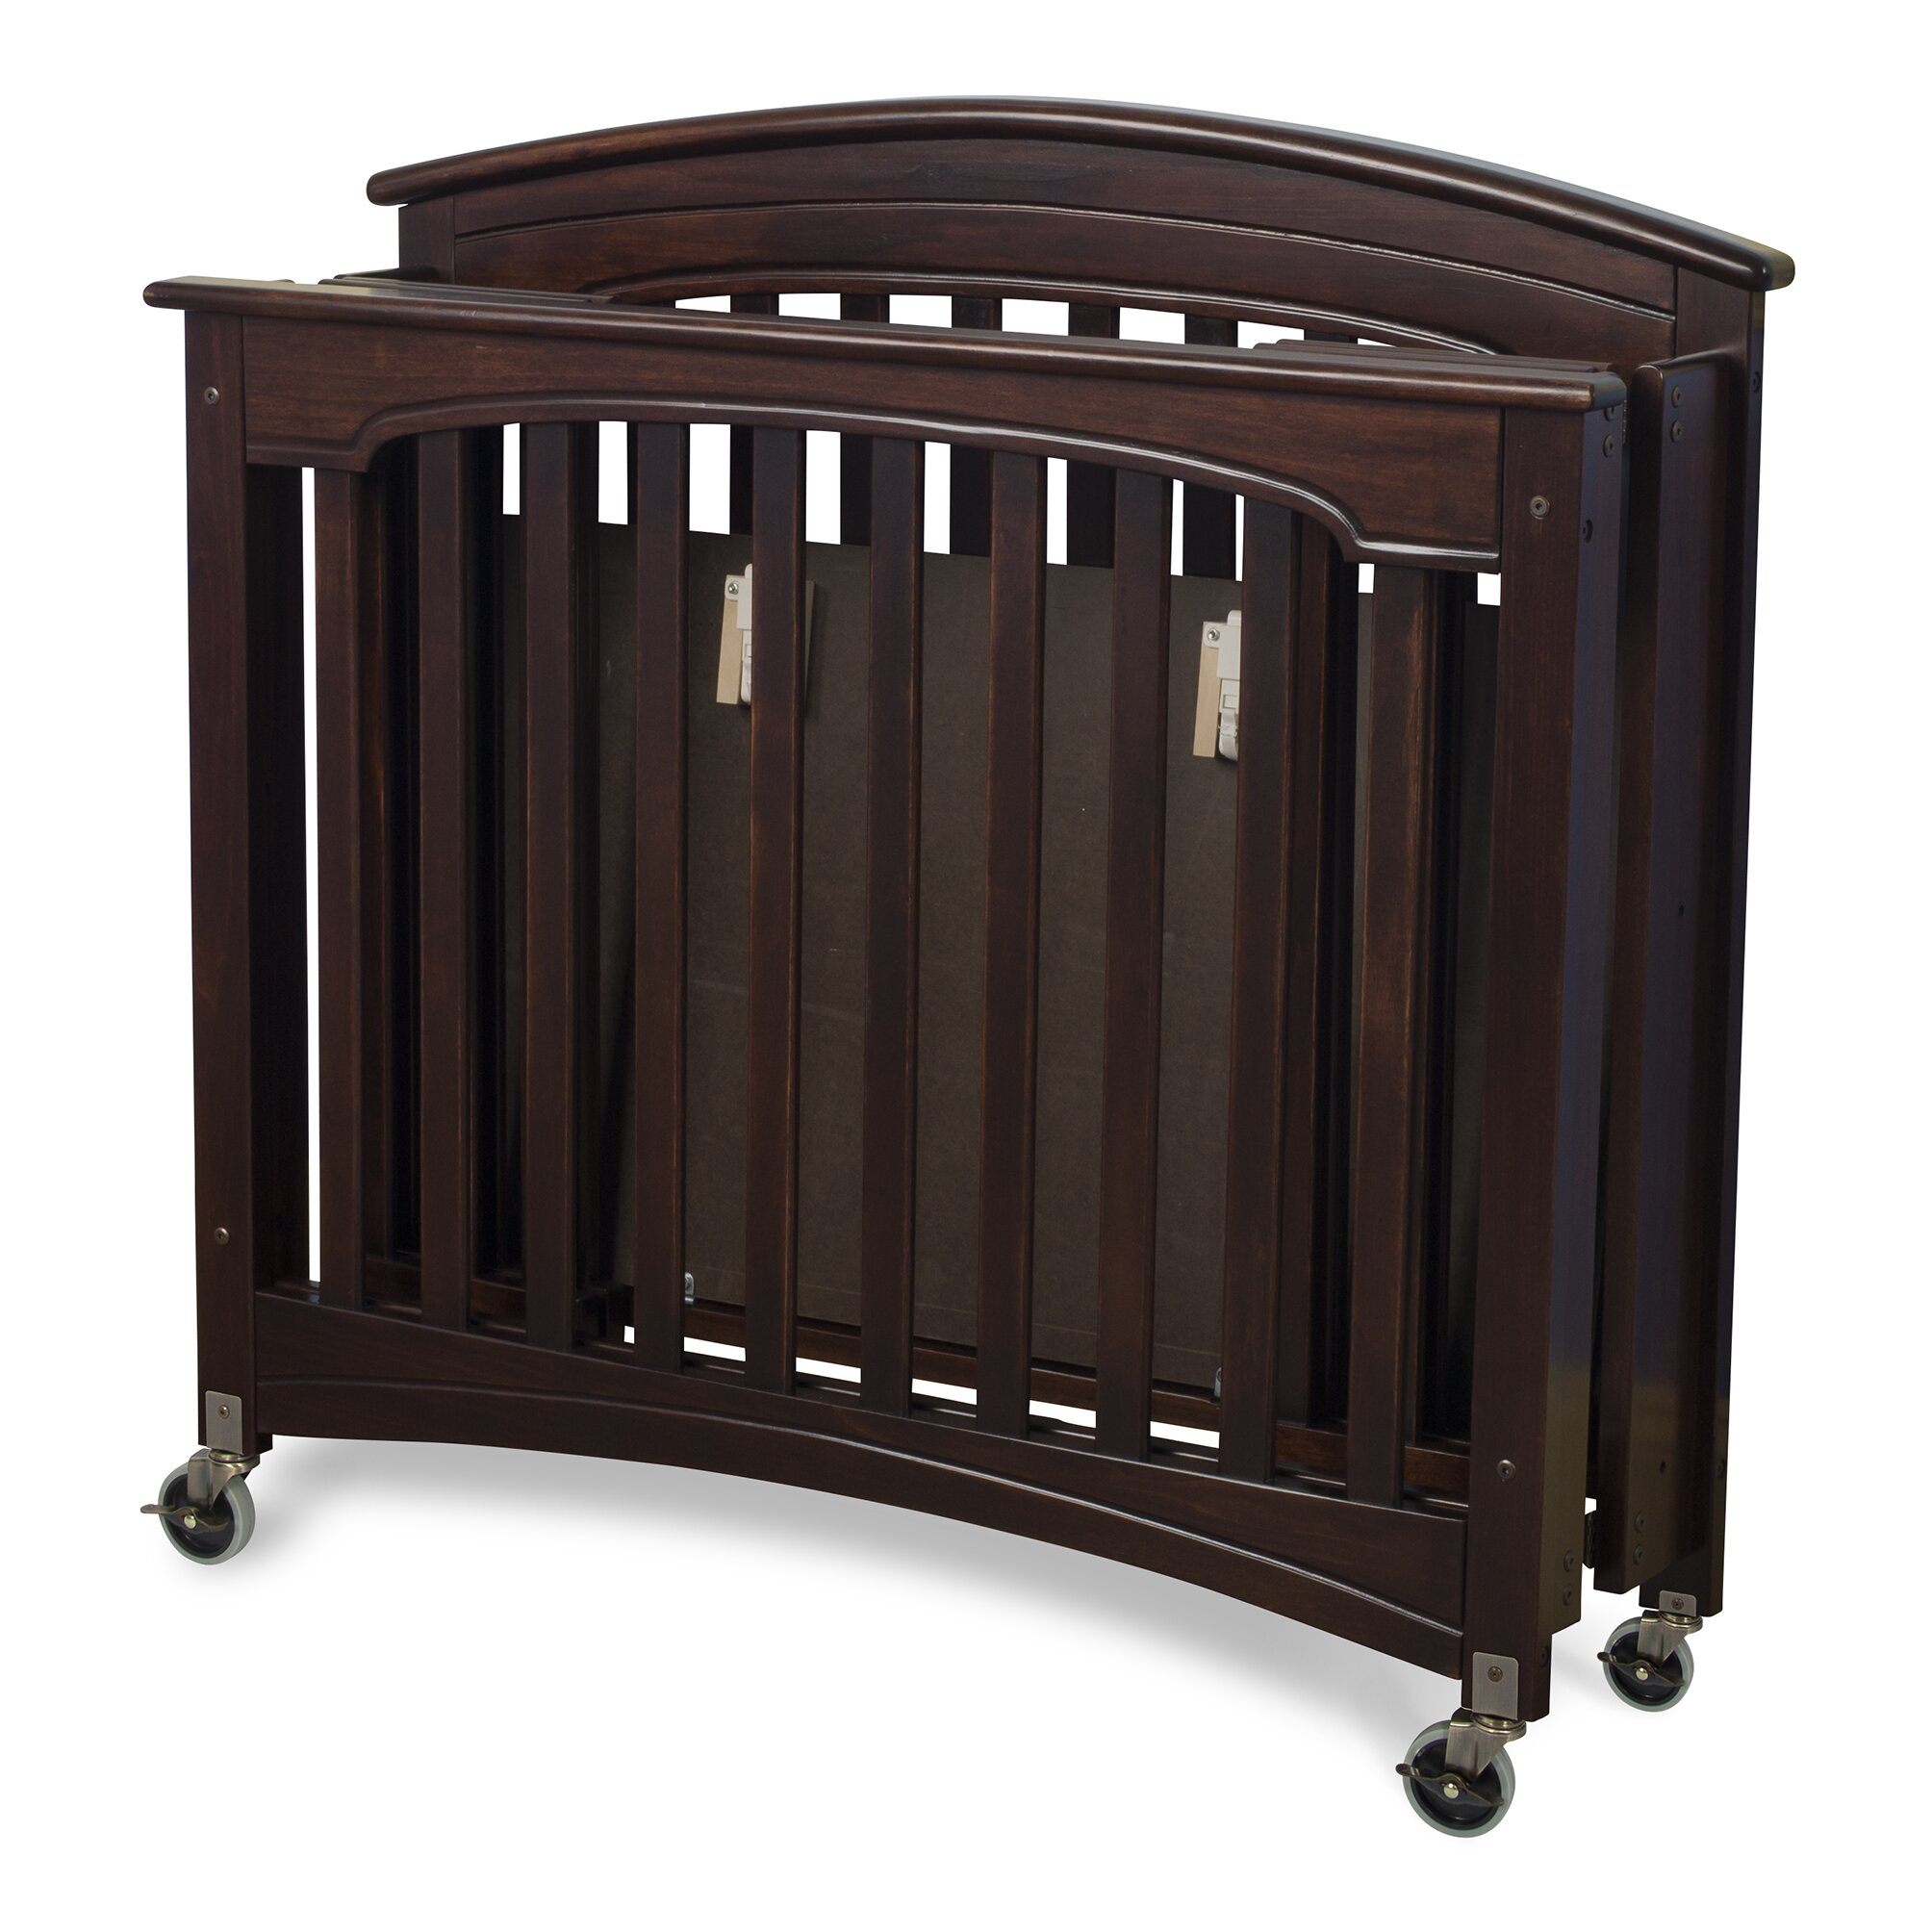 Used crib for sale toronto - Foundations Royale Fixed Side Folding Compact Convertible Crib With Mattress